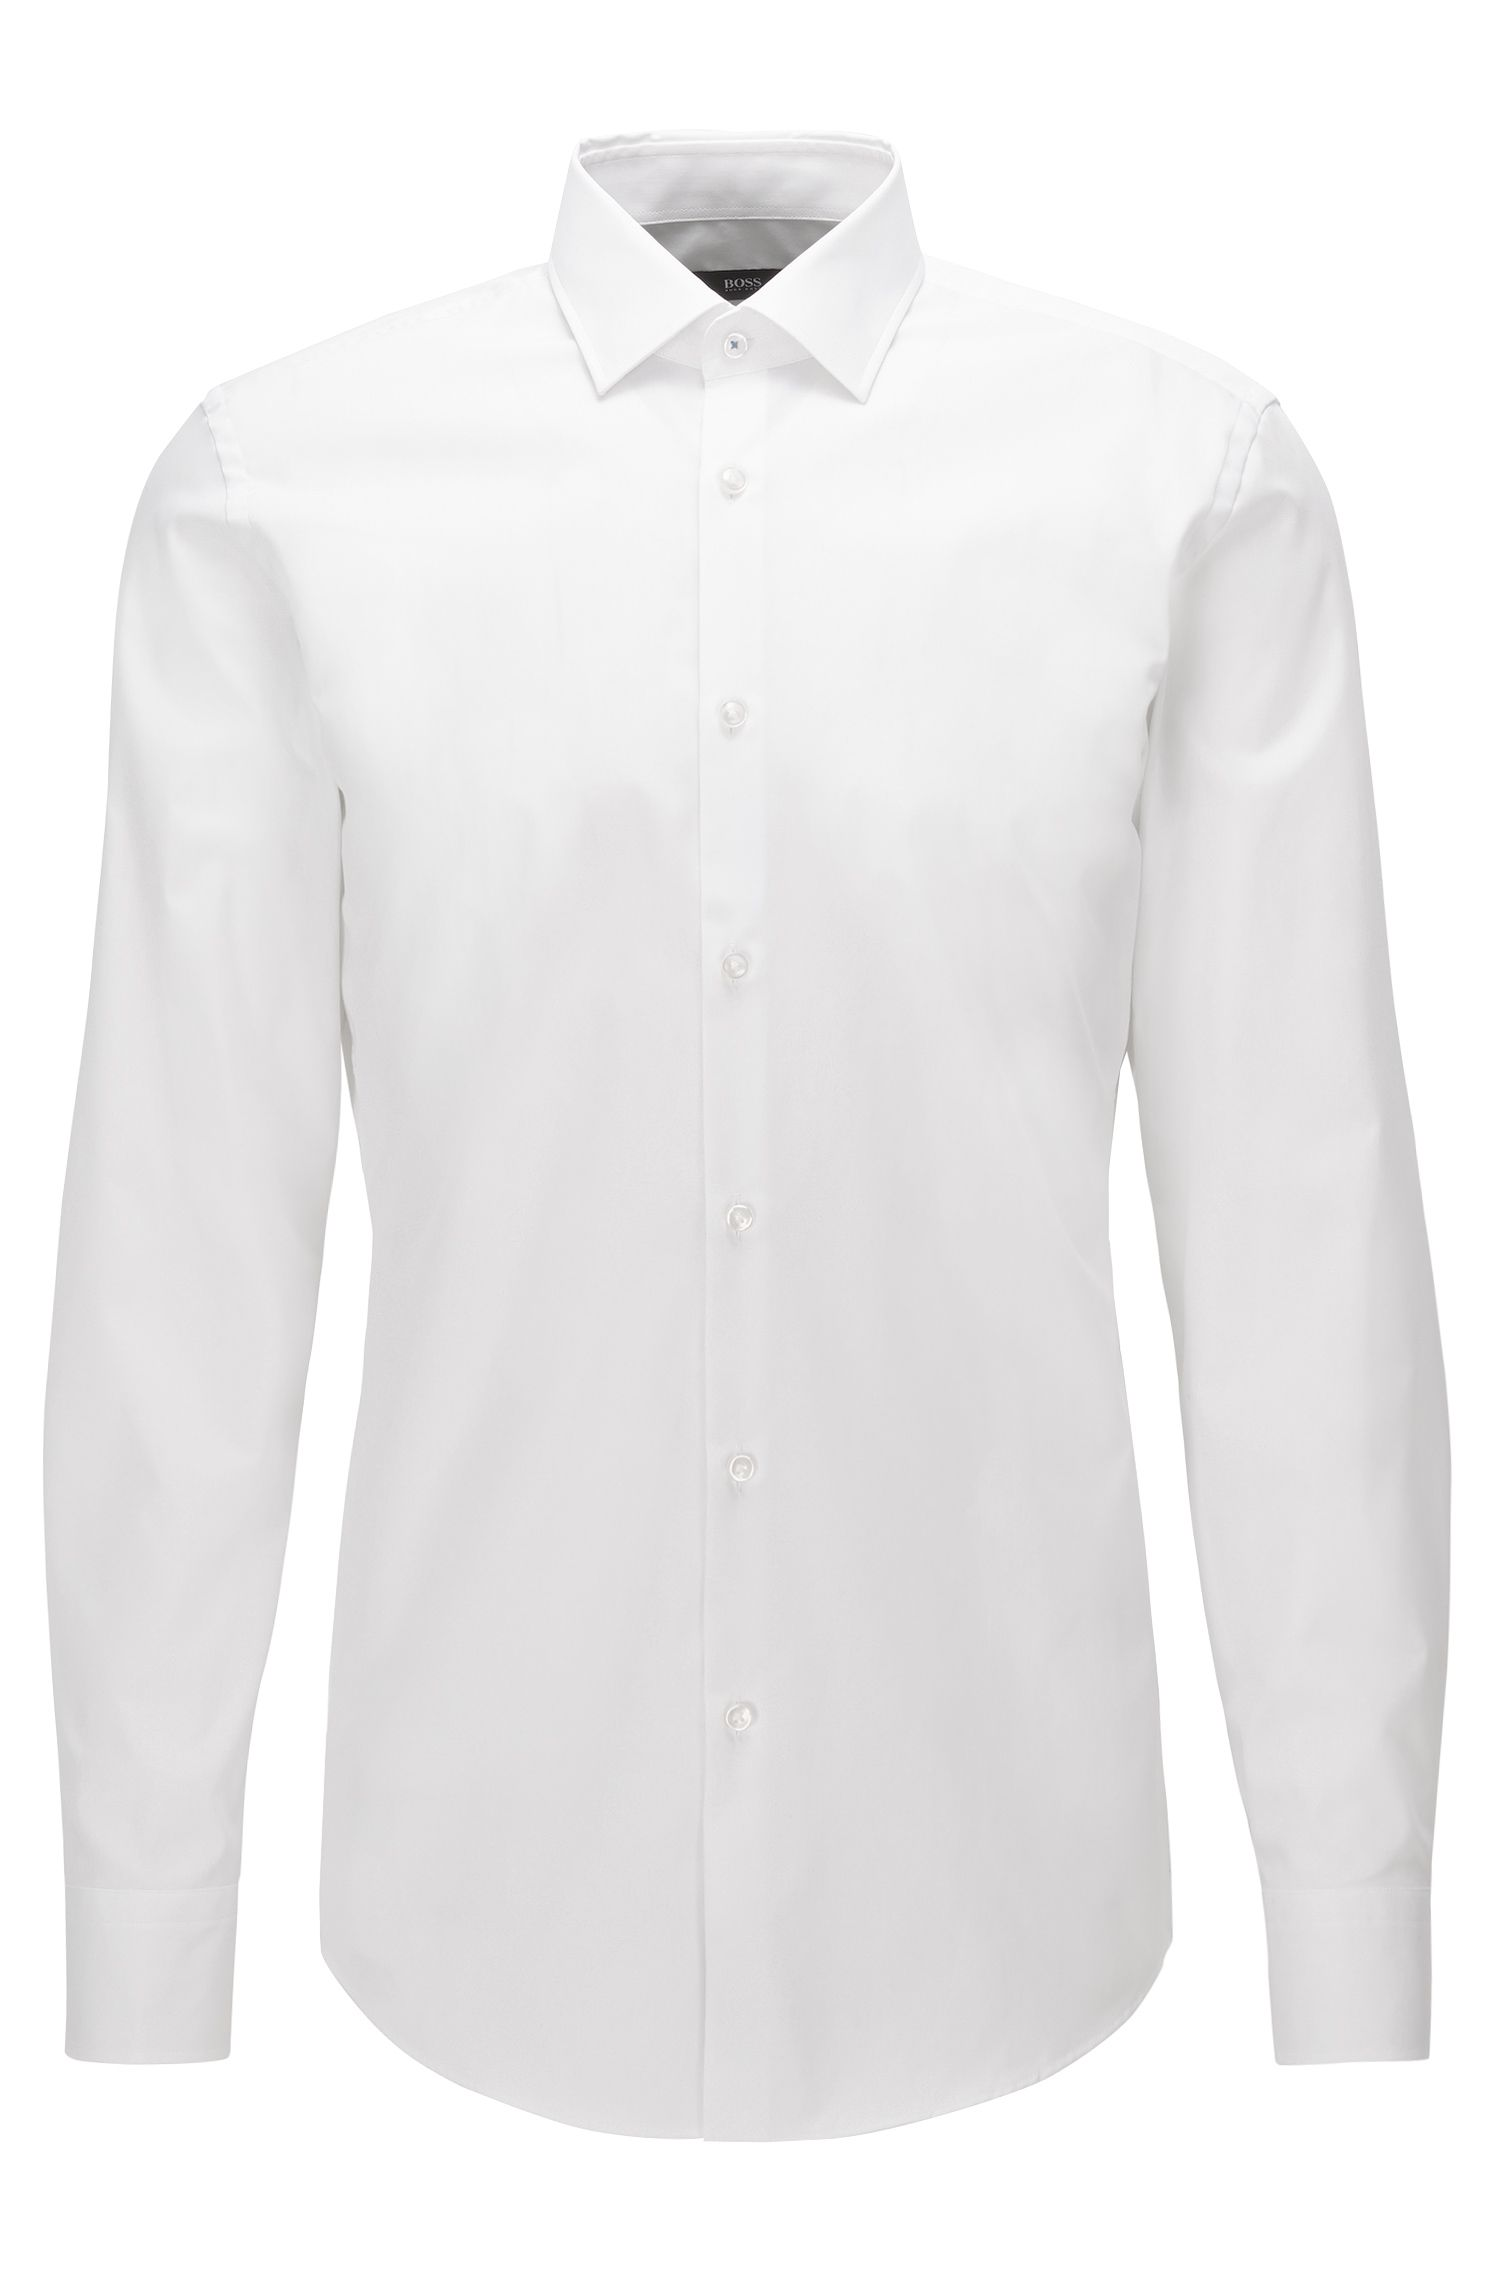 Camicia slim fit in cotone facile da stirare